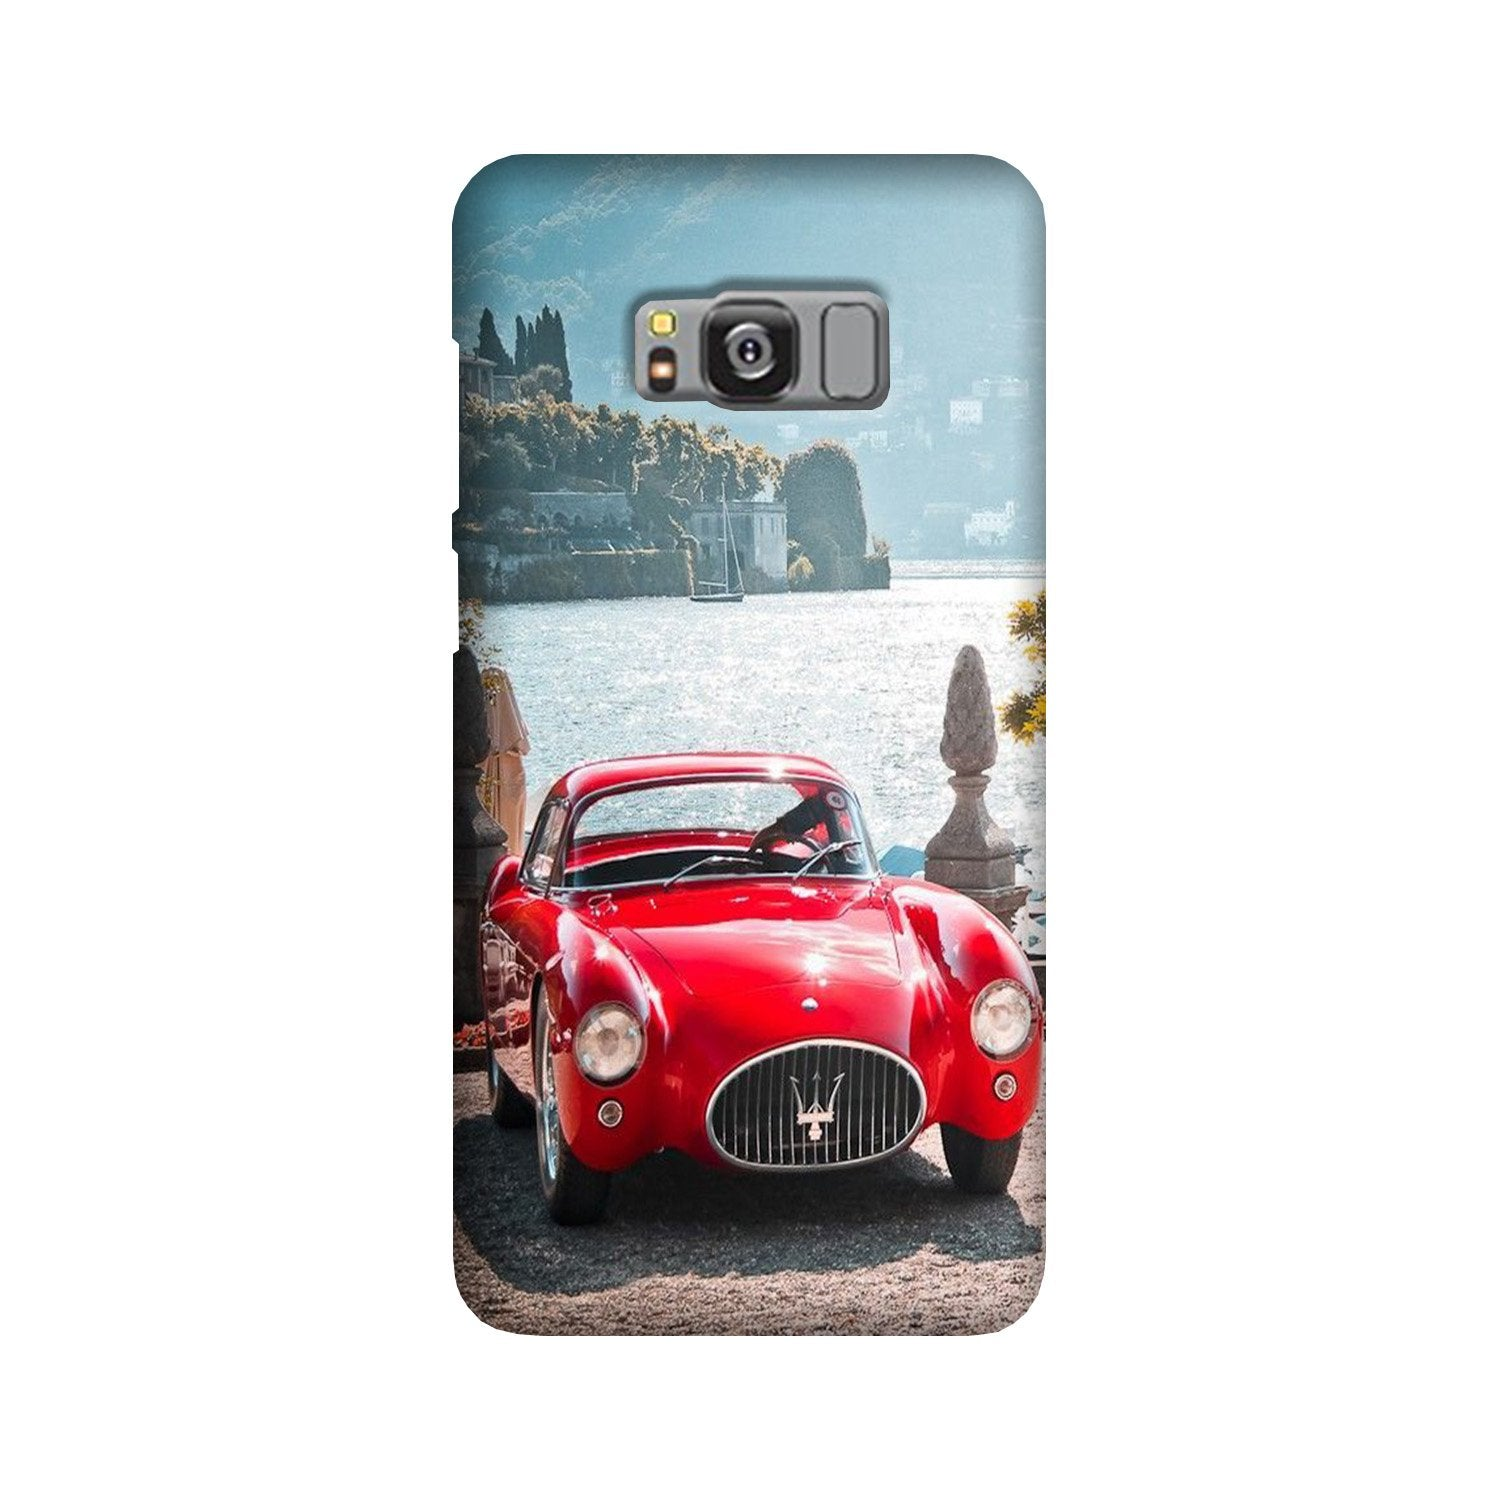 Vintage Car Case for Galaxy S8 Plus